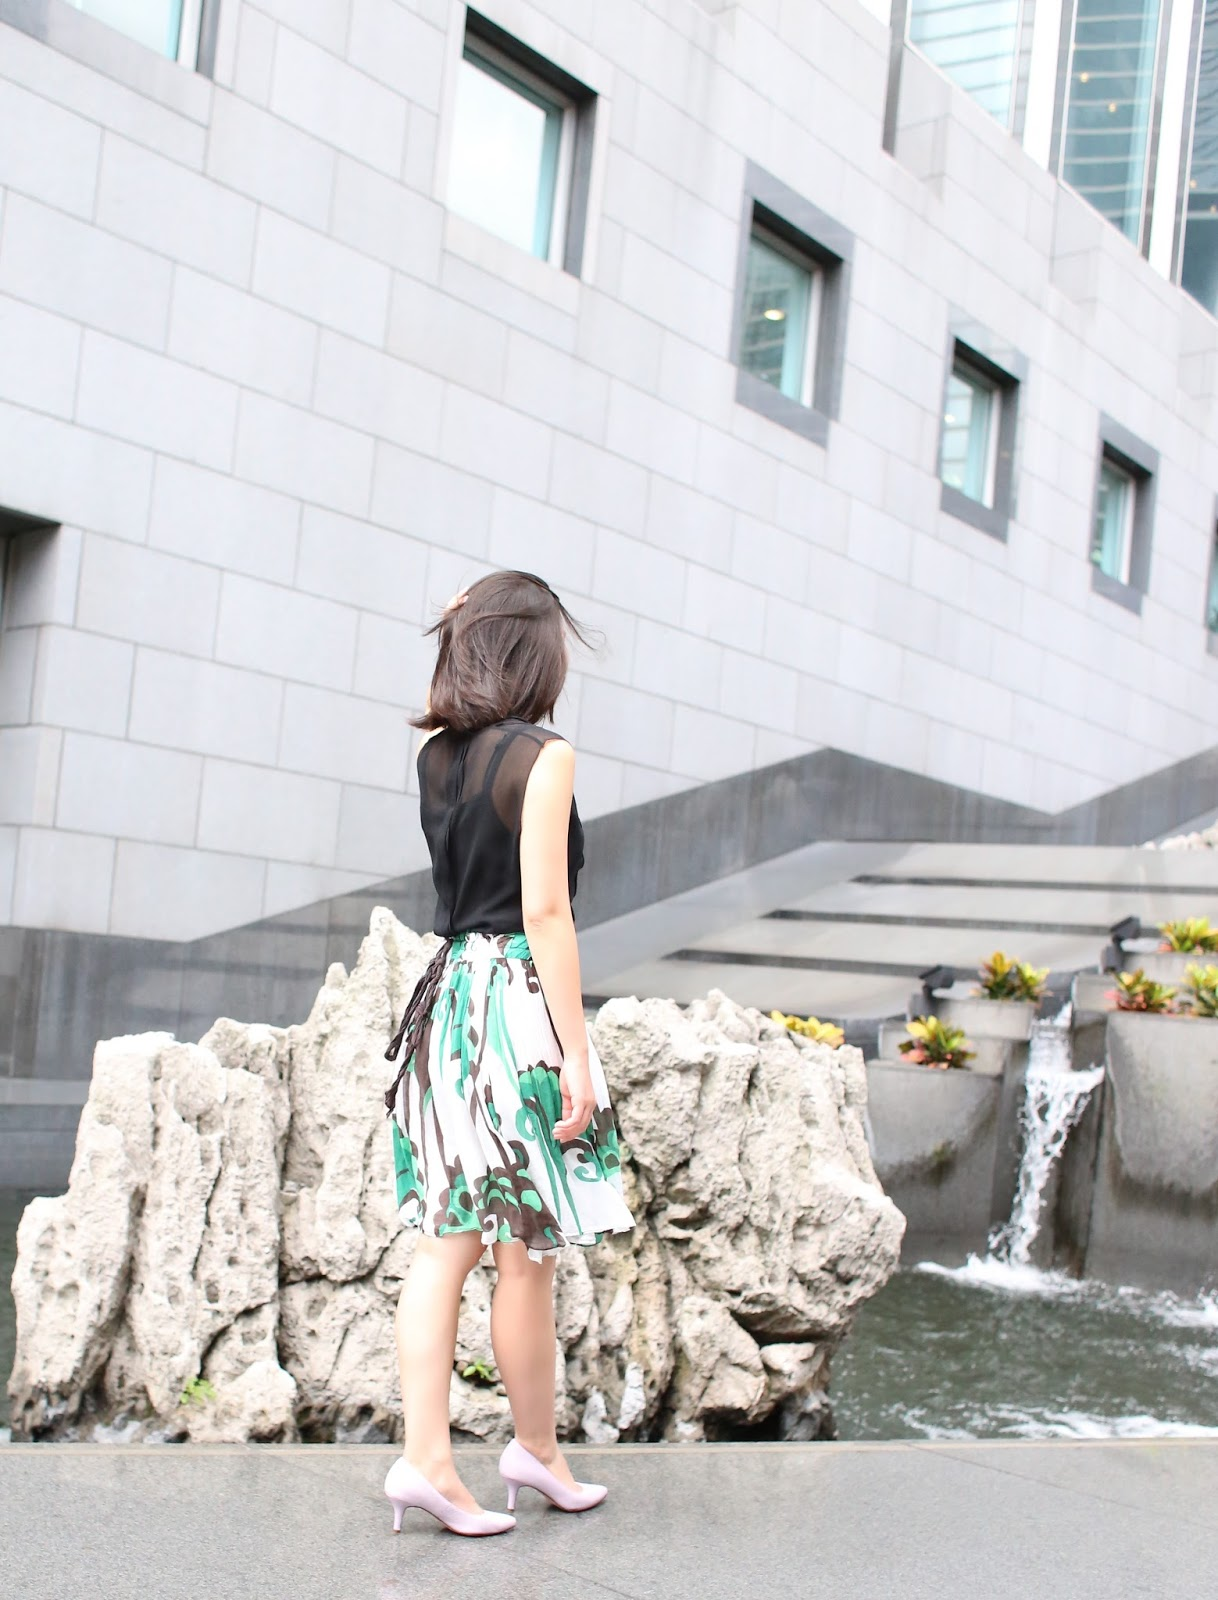 zara outfit, green skirt with swirls, chiffon green skirt, 9 to 5 chic, finance outfit, law outfit